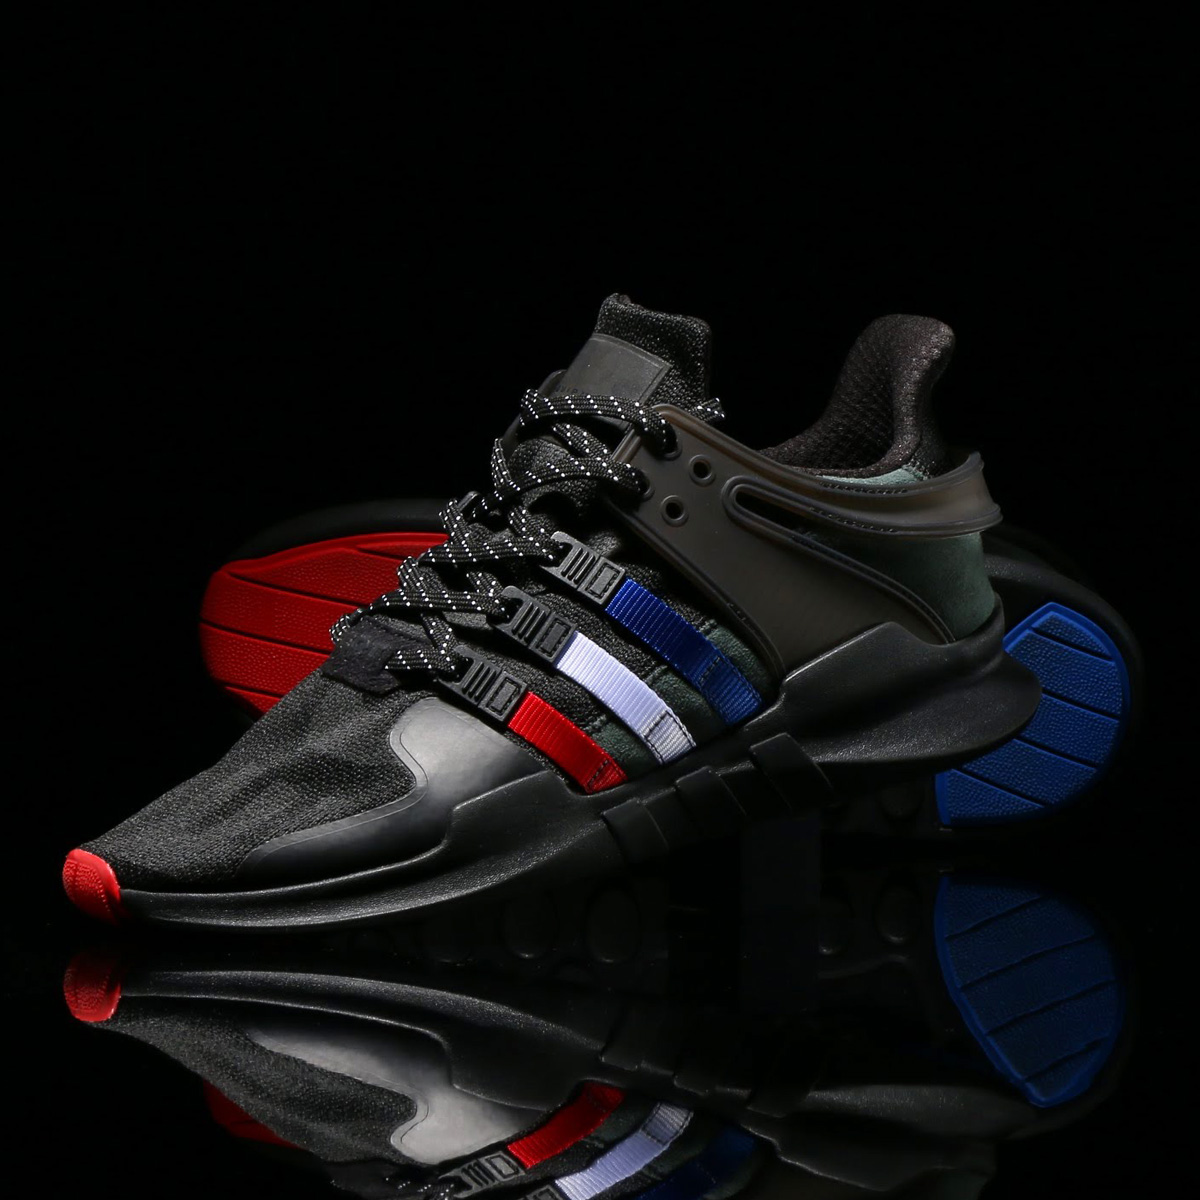 cheap for discount 2d3ed 4578c adidas EQT SUPPORT ADV ATMOS (Adidas E cue tea support ADV atto- MOS) Core  Black/Running White/Core Black 18SS-S